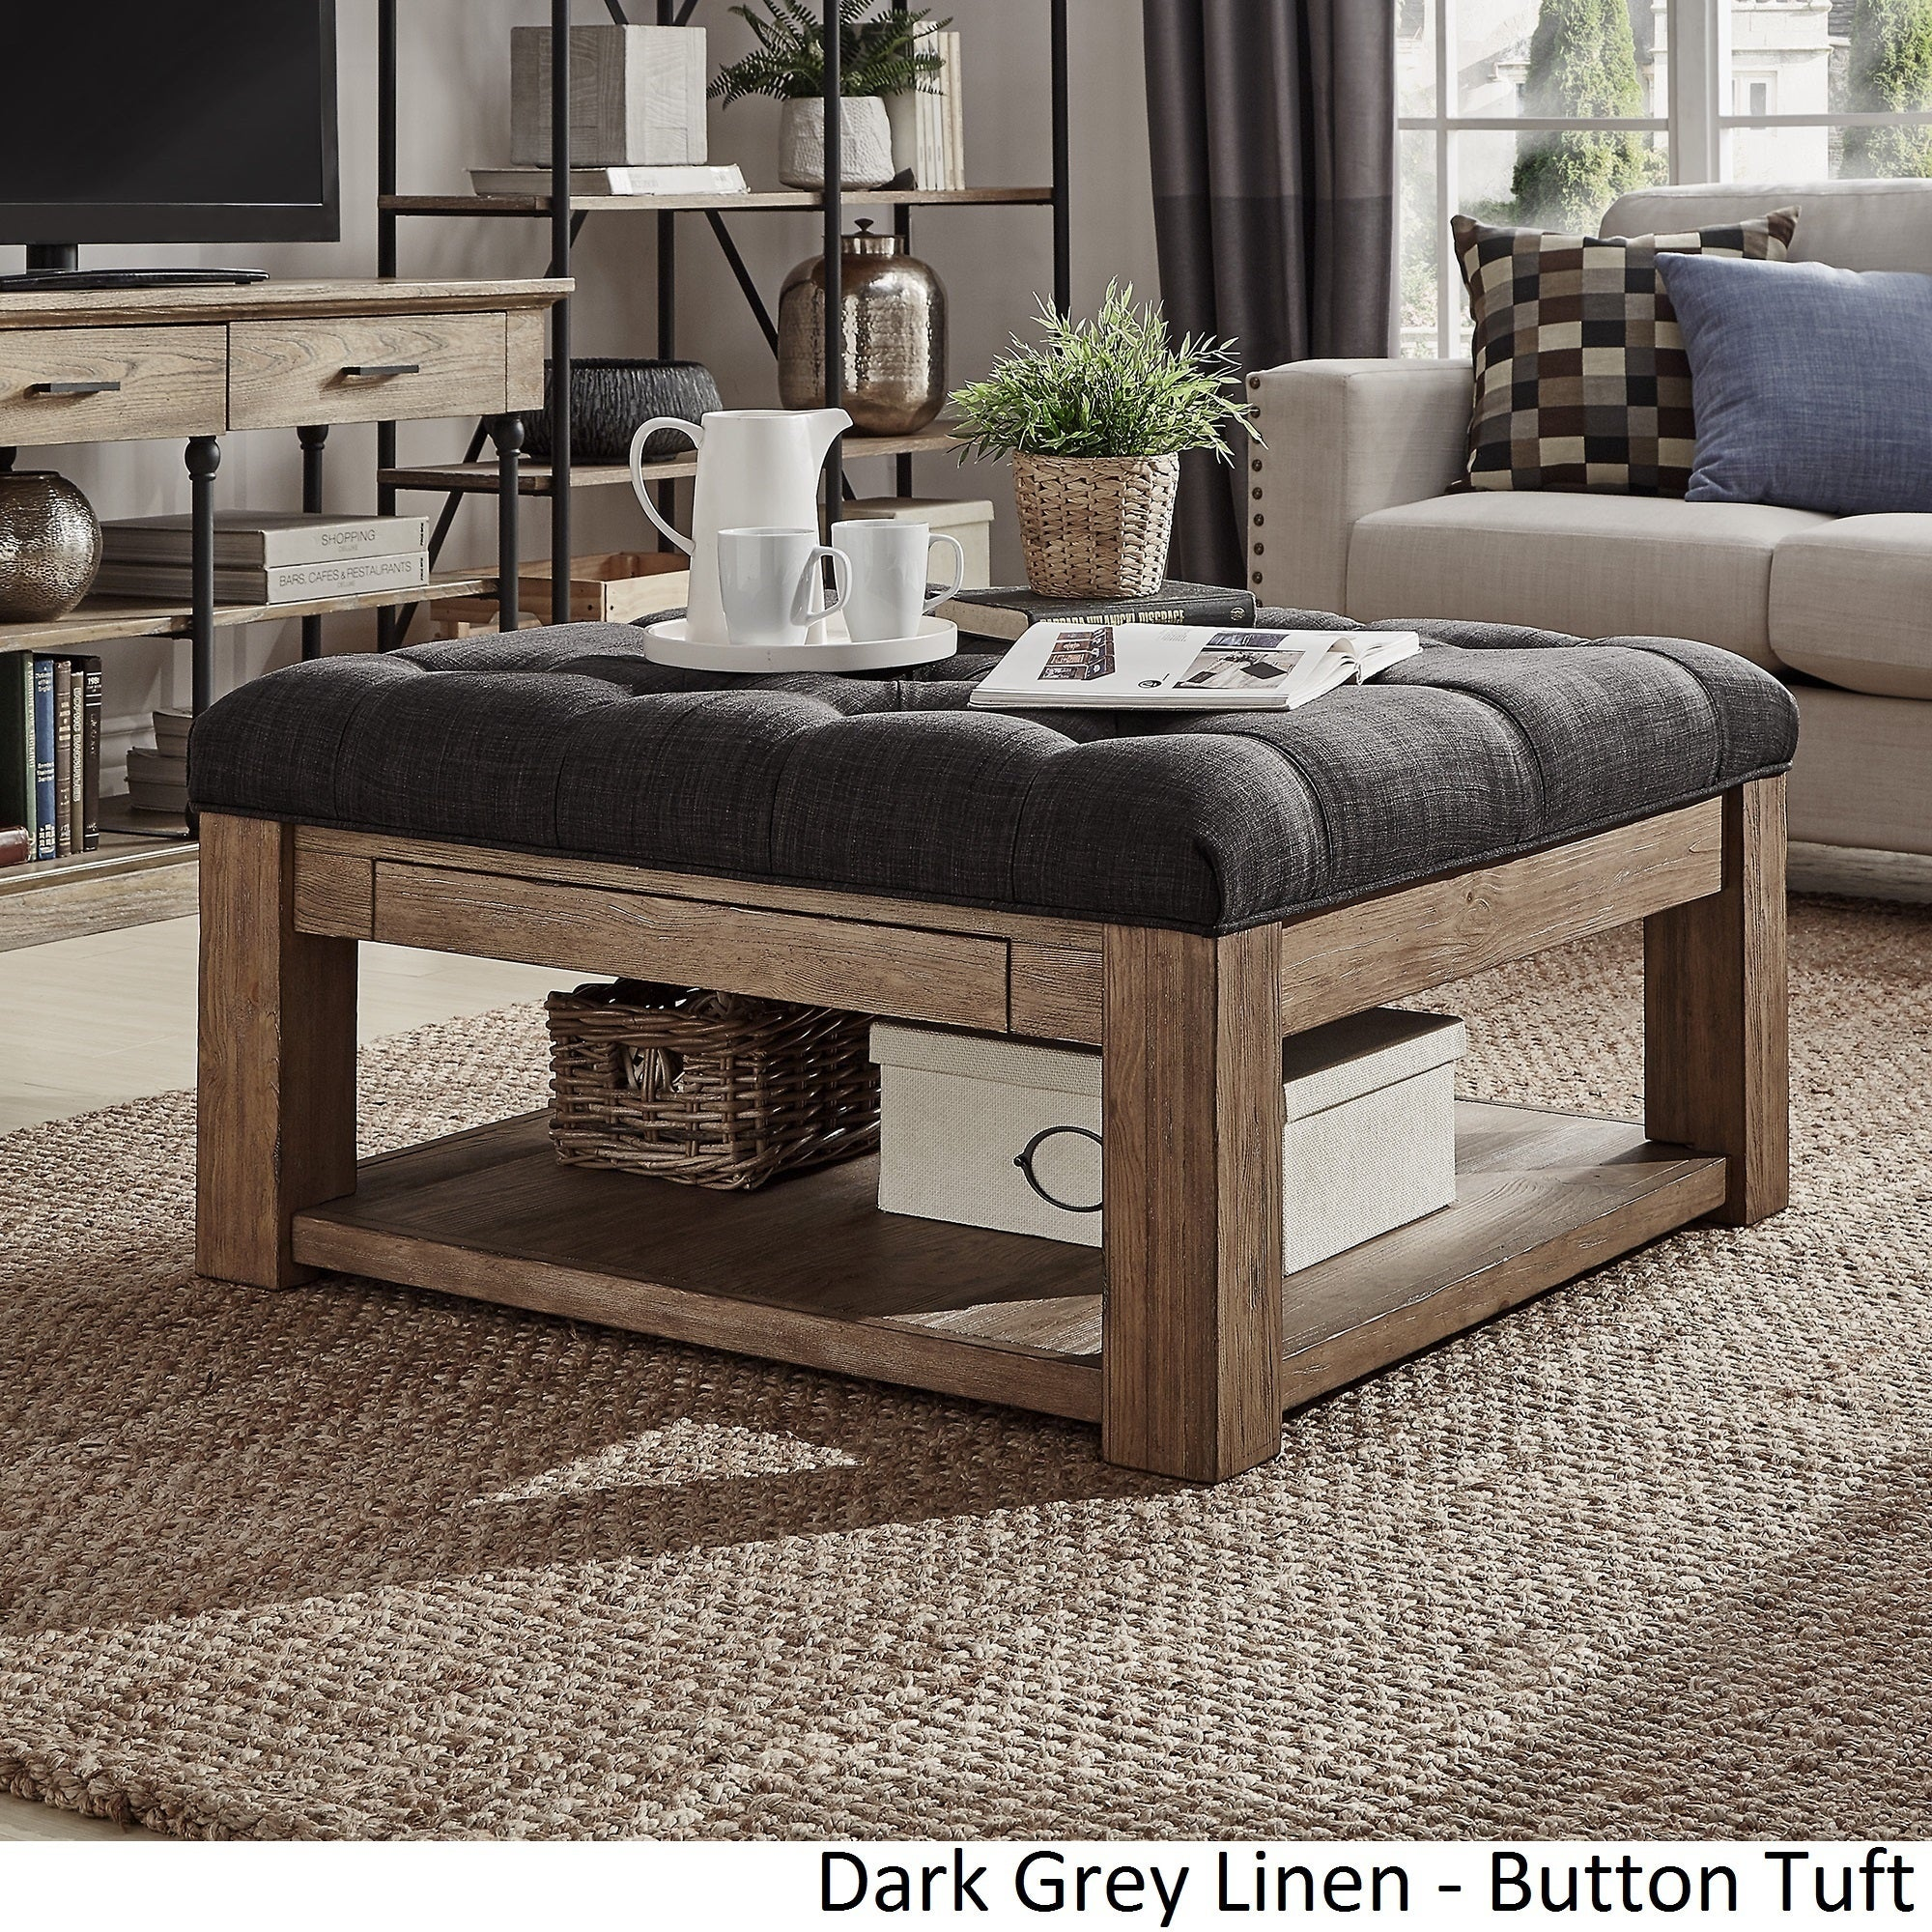 Lennon Pine Square Storage Ottoman Coffee Table by iNSPIRE Q Artisan - Free  Shipping Today - Overstock.com - 20099872